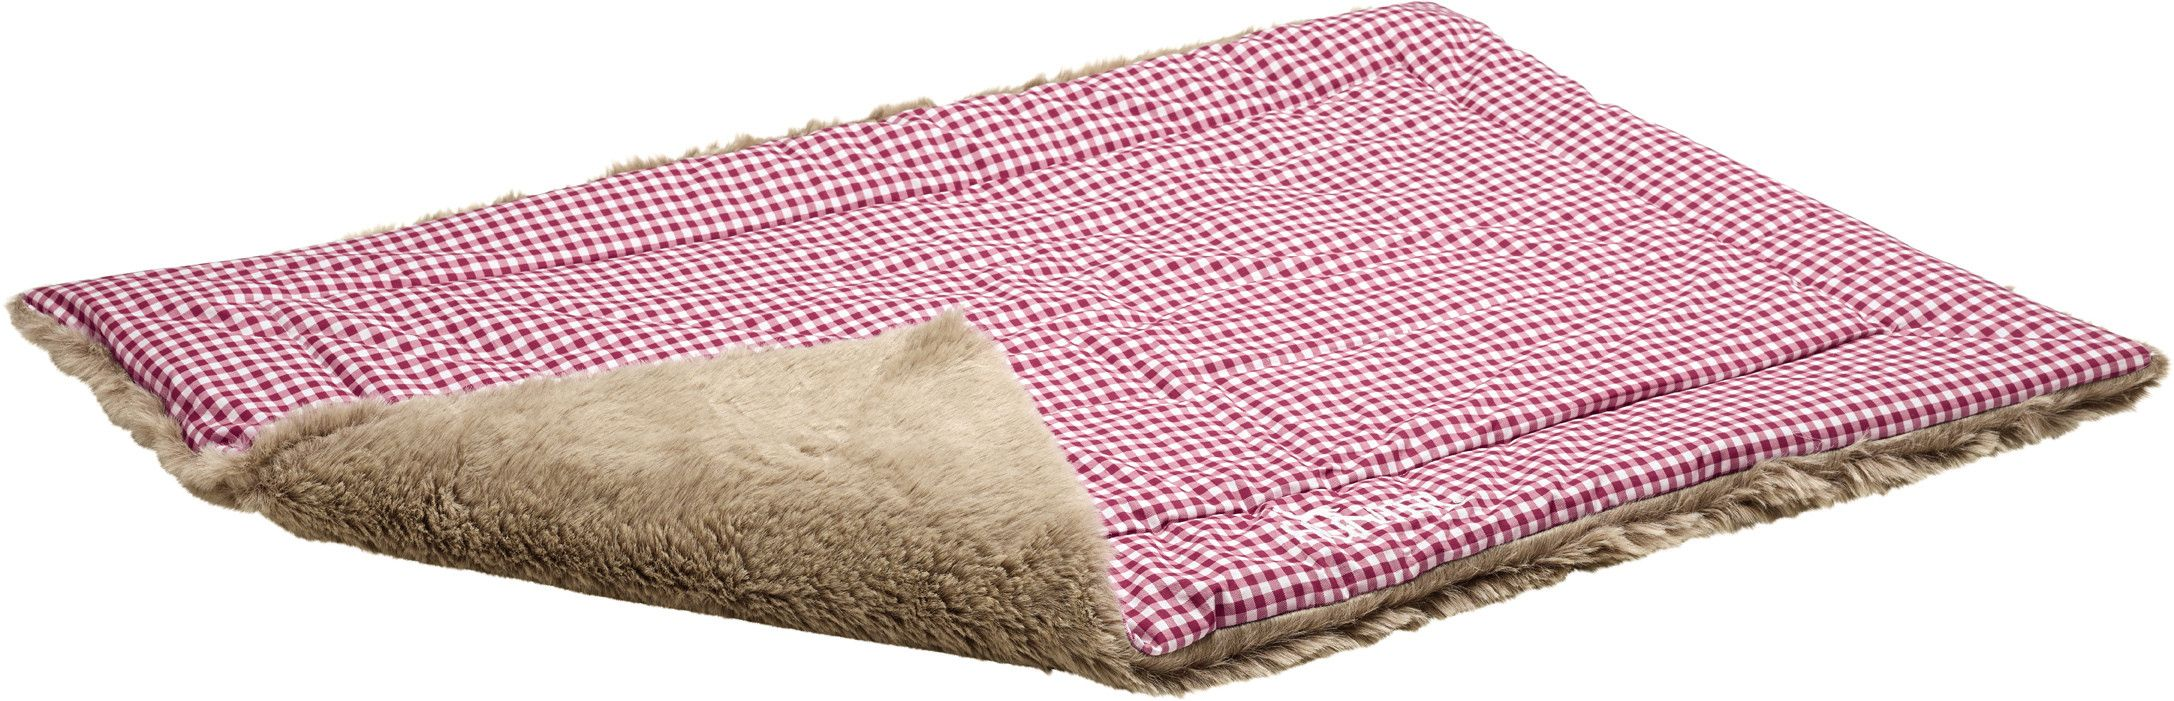 tapis plaid coton hunter astana